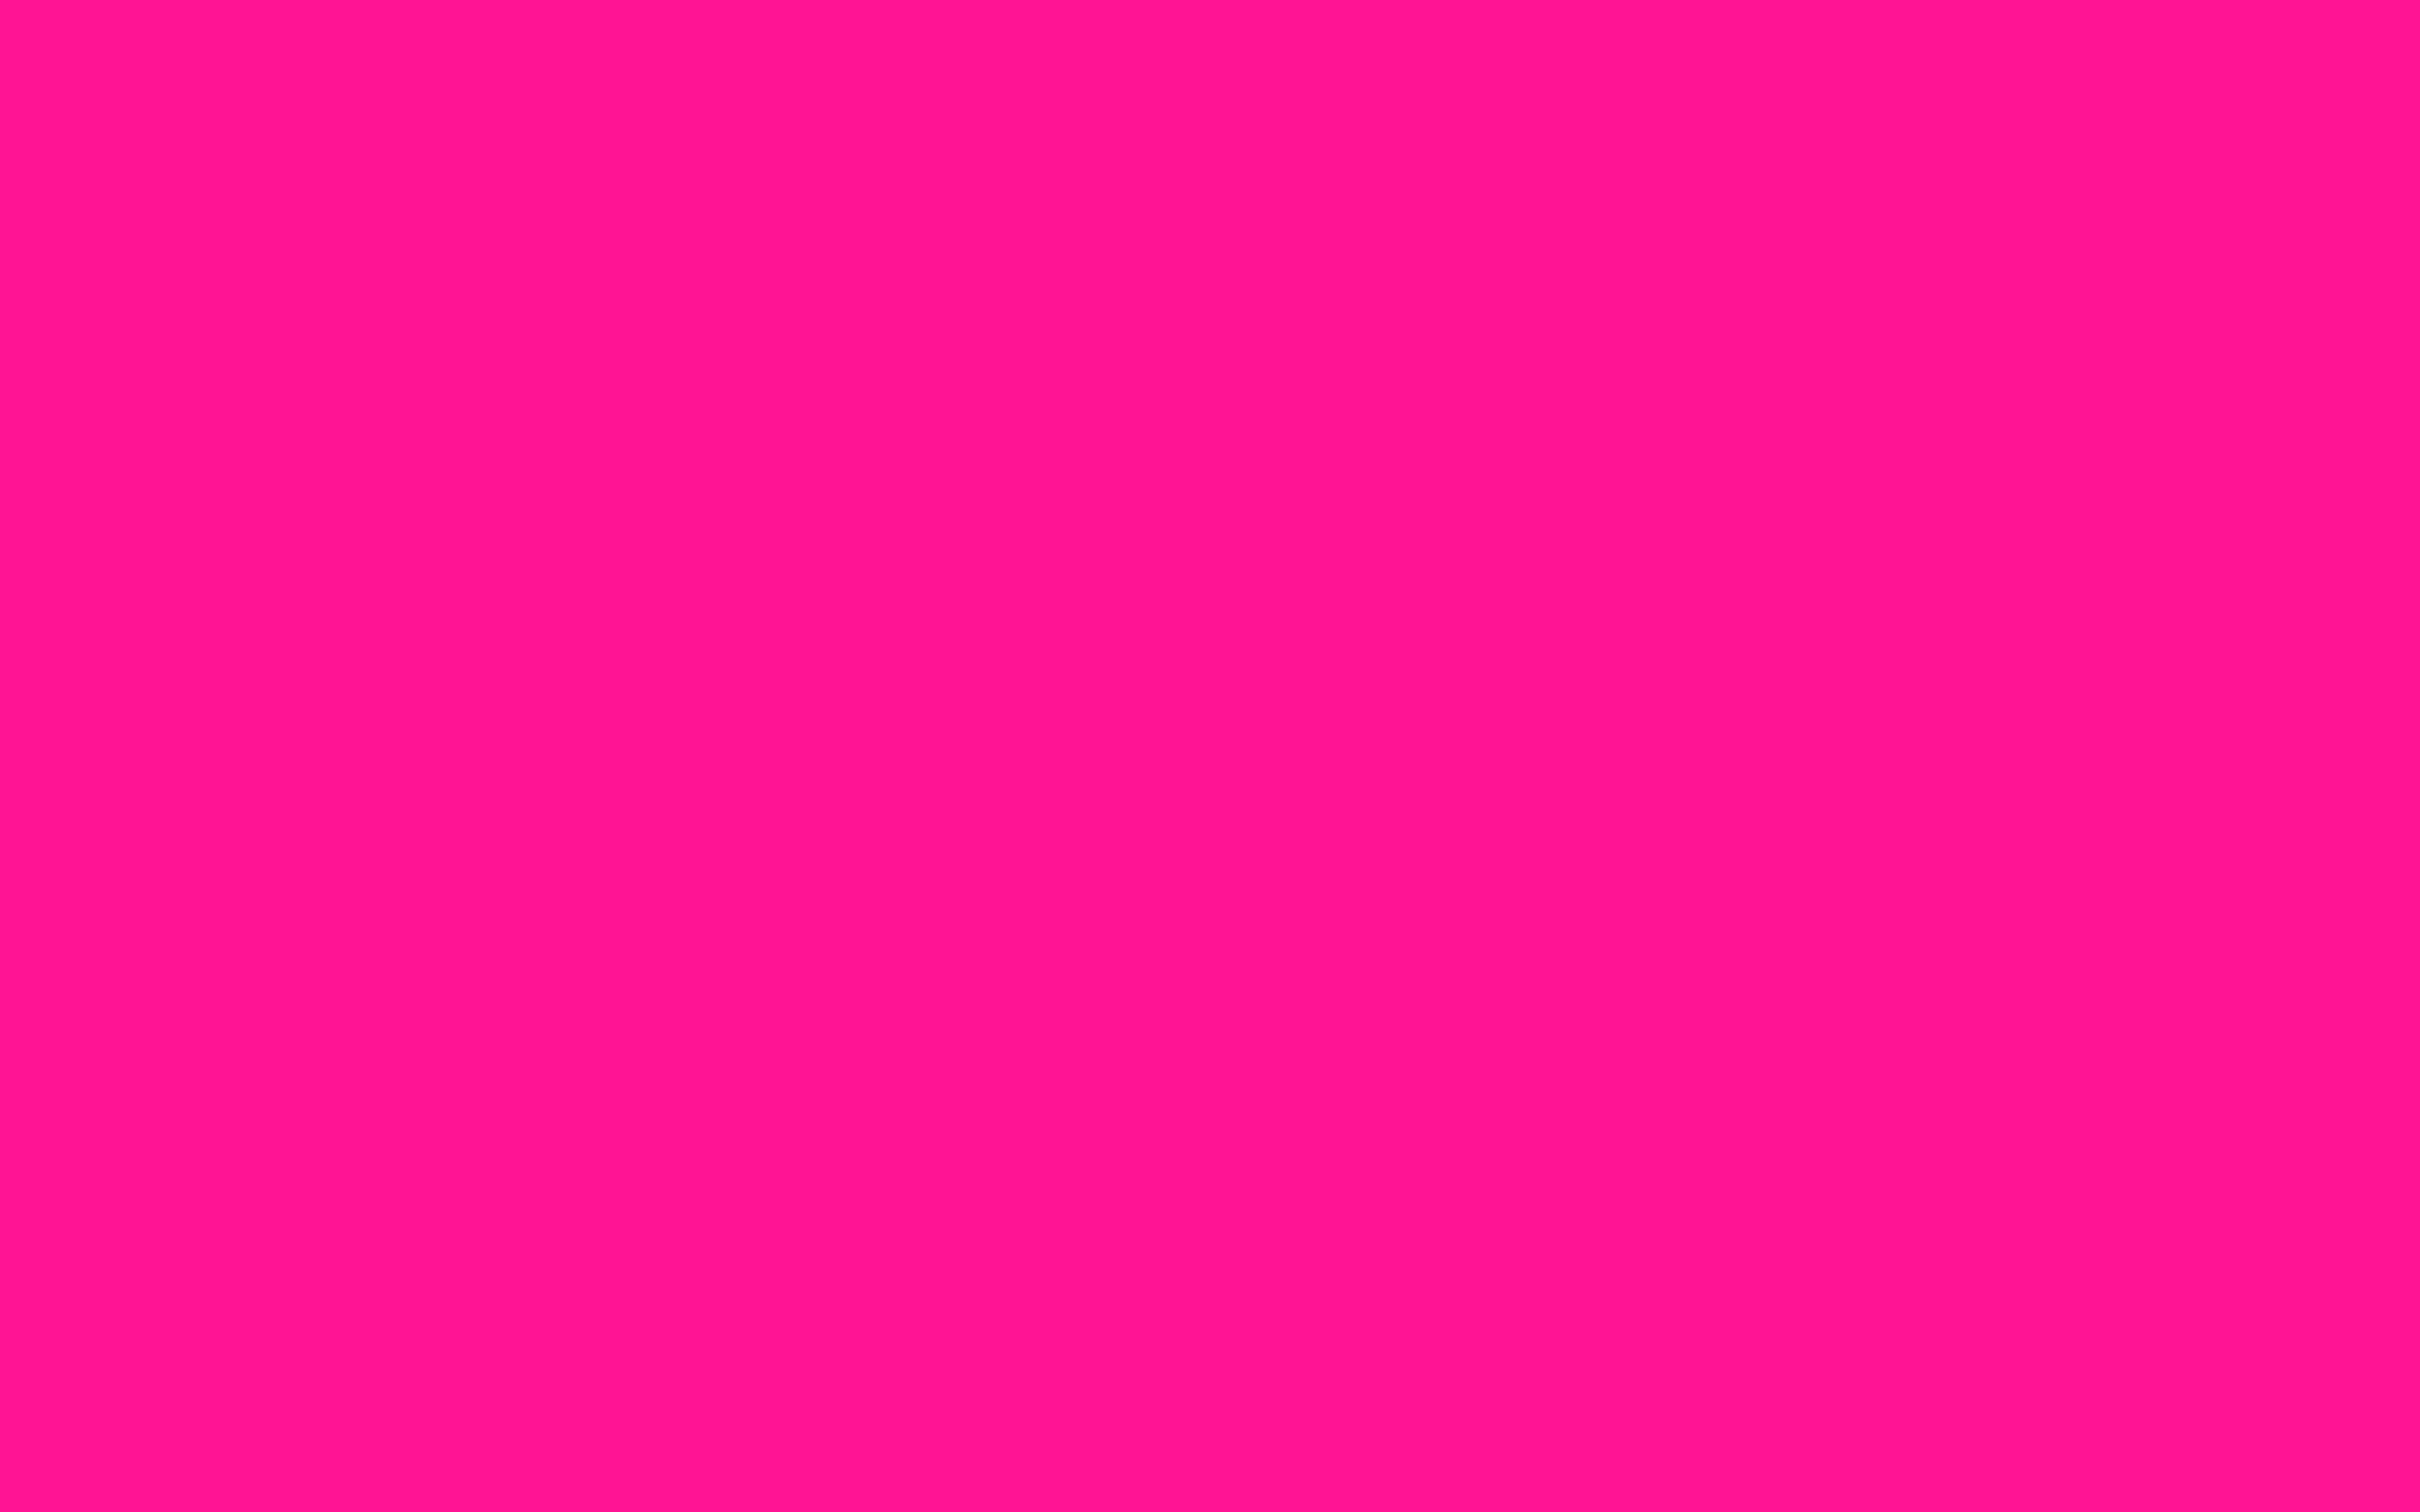 2560x1600 Deep Pink Solid Color Background